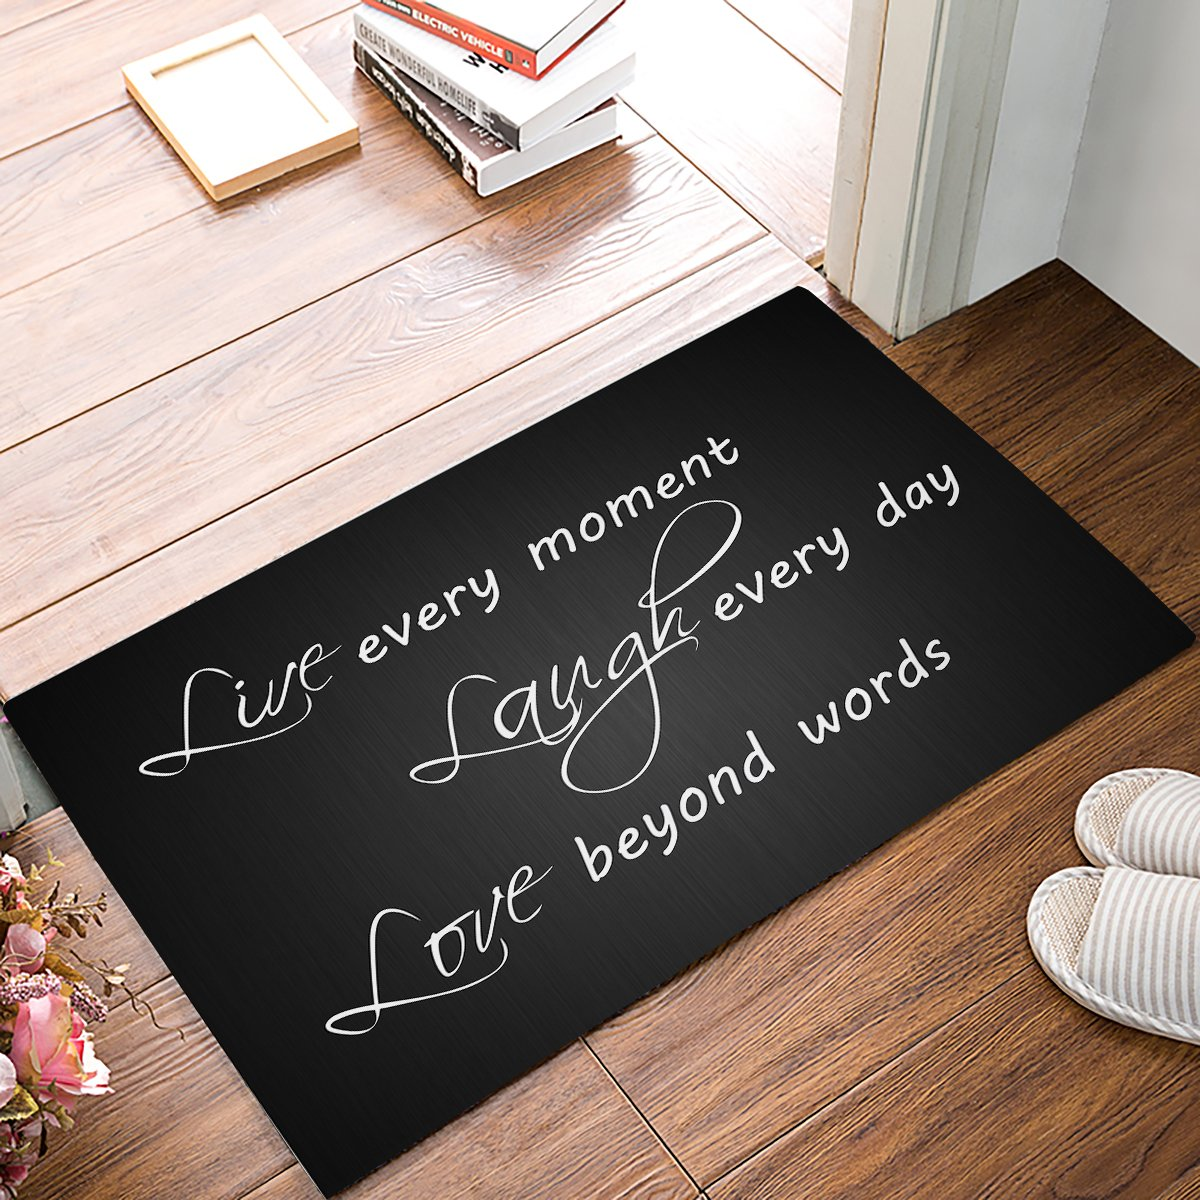 23.6 x 15.7 Inch Live Every Moment Laugh Every Day Love Beyond Words - Door Mats Kitchen Floor Bath Entrance Rug Mat Absorbent Indoor Bathroom Decor Doormats Rubber Non Slip Grey